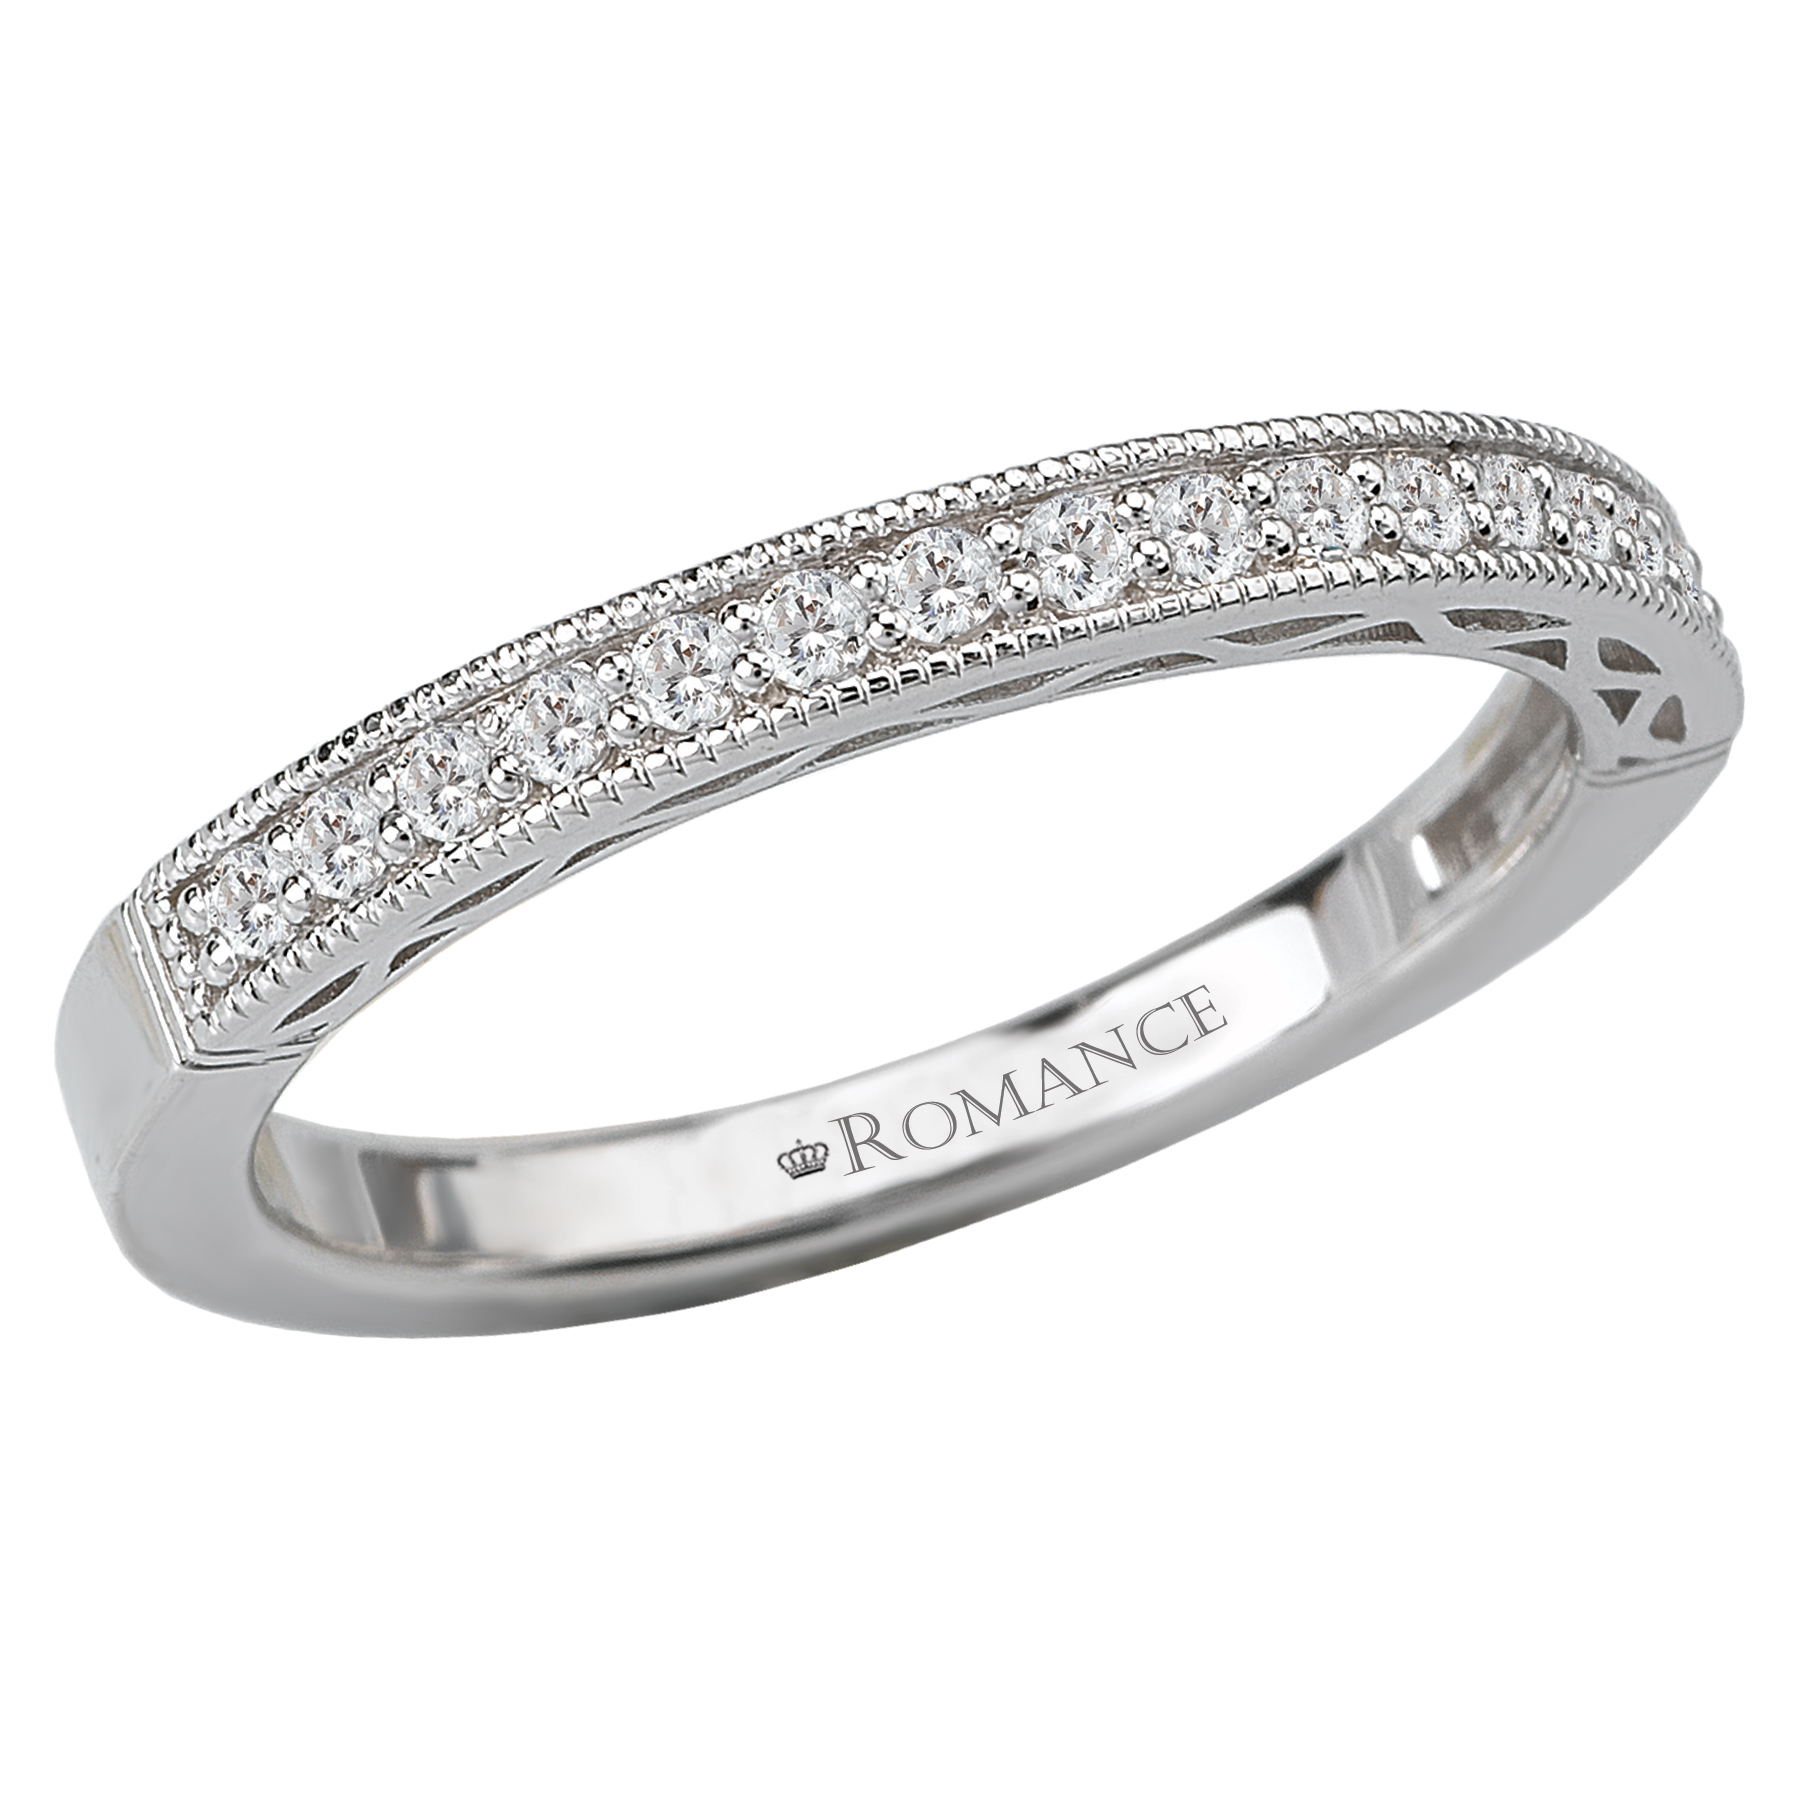 Romance Wedding Bands 117362-W product image